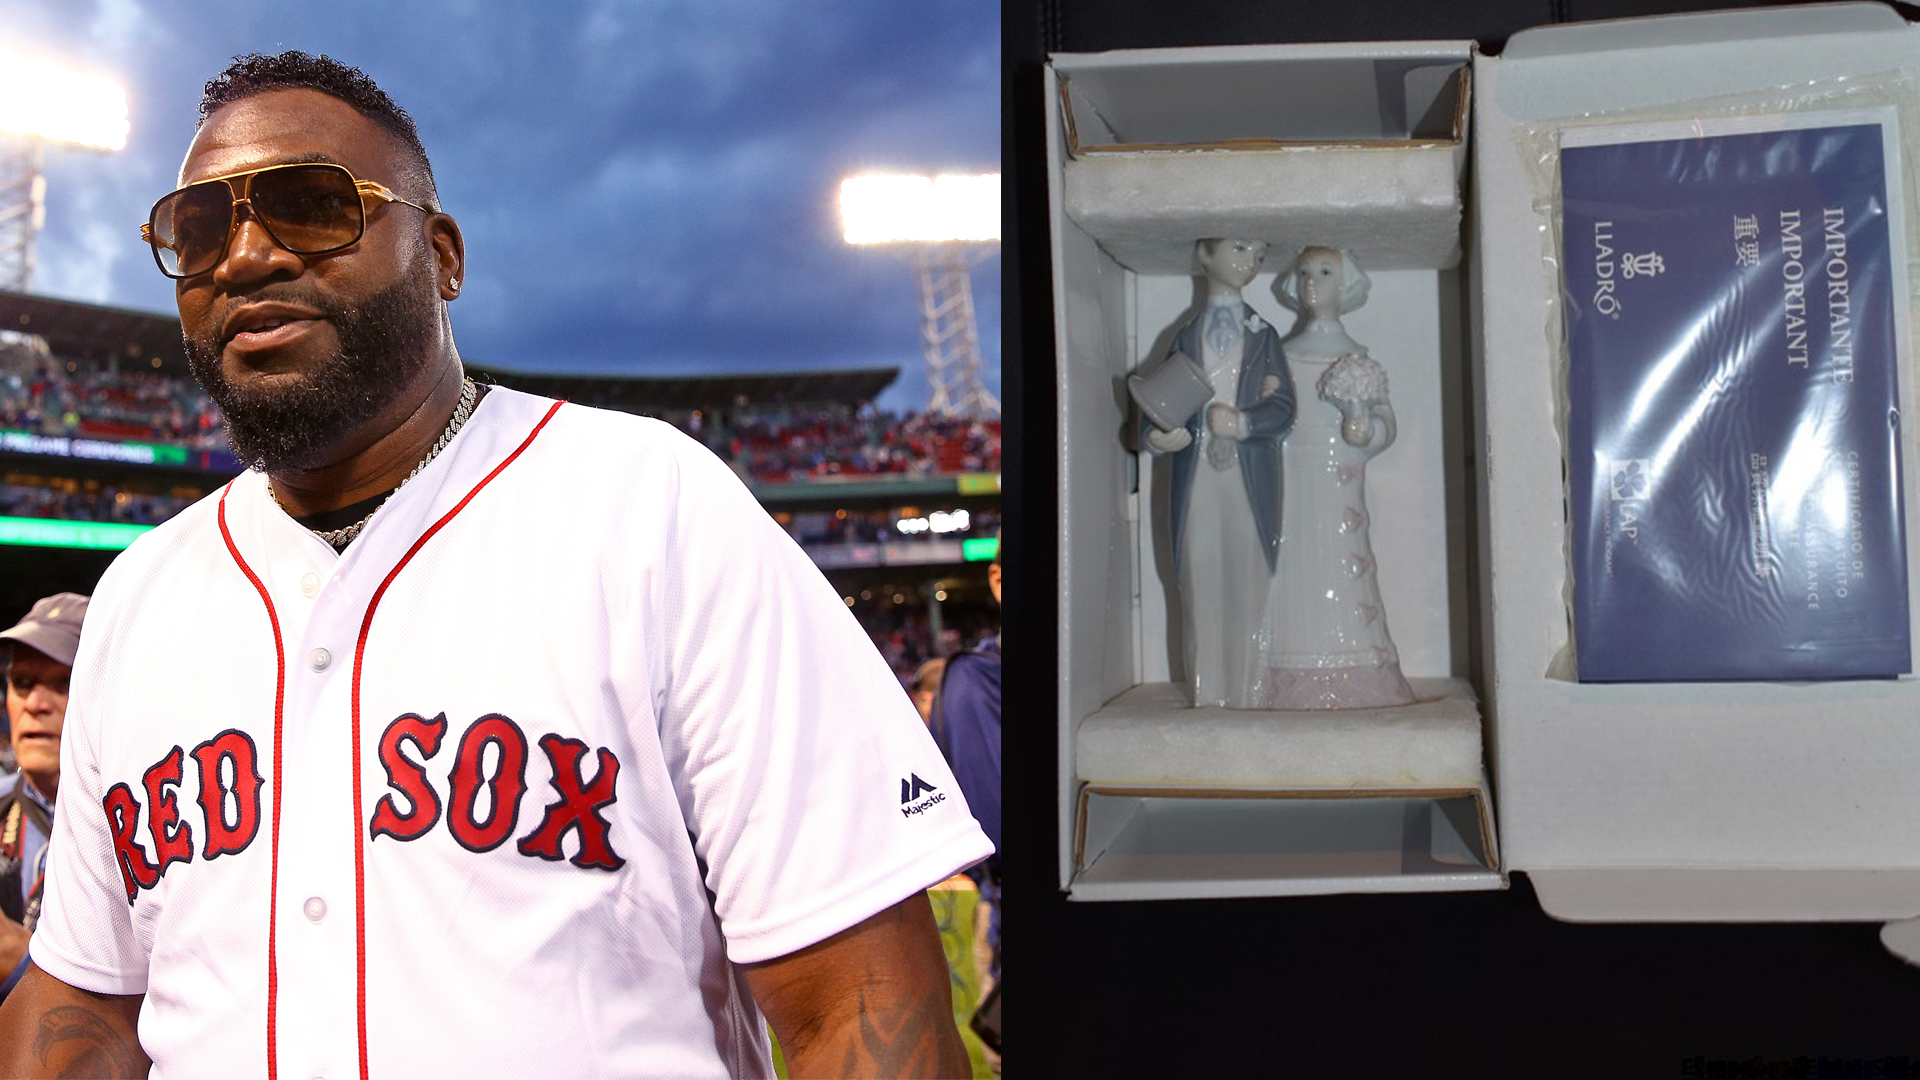 Check out the best items from David Ortiz